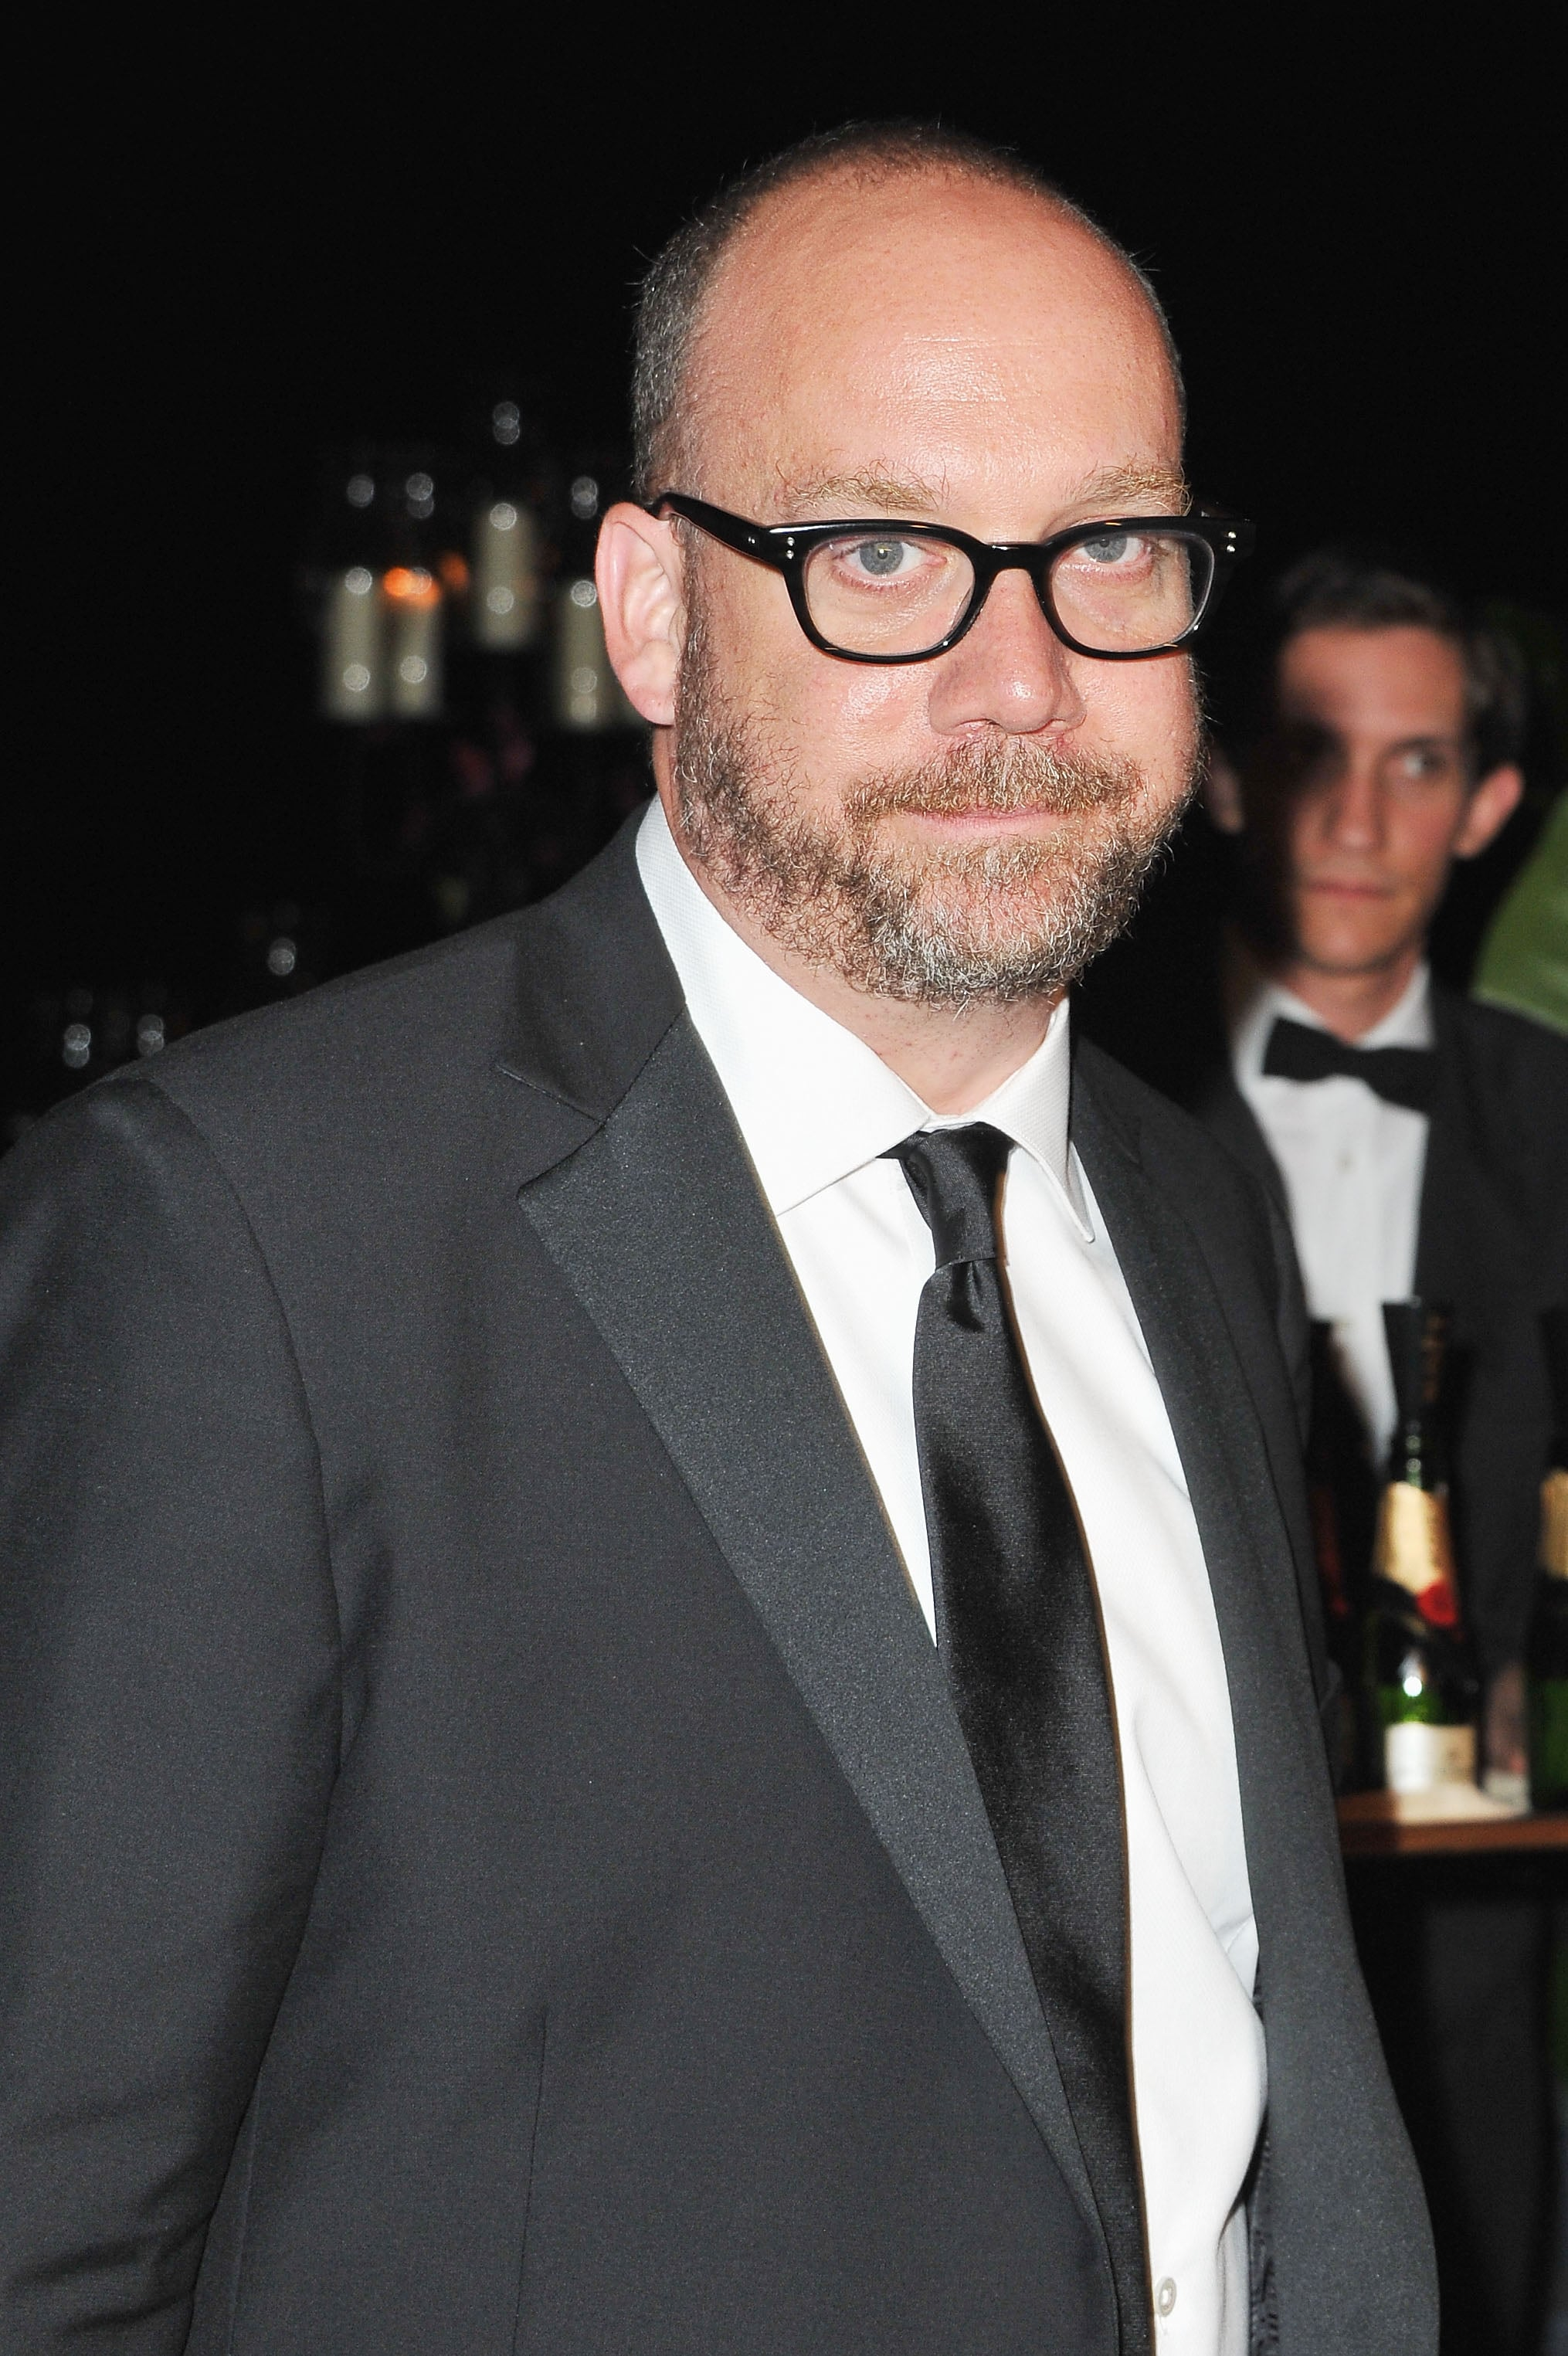 Paul Giamatti at the Venice Film Festival opening dinner.